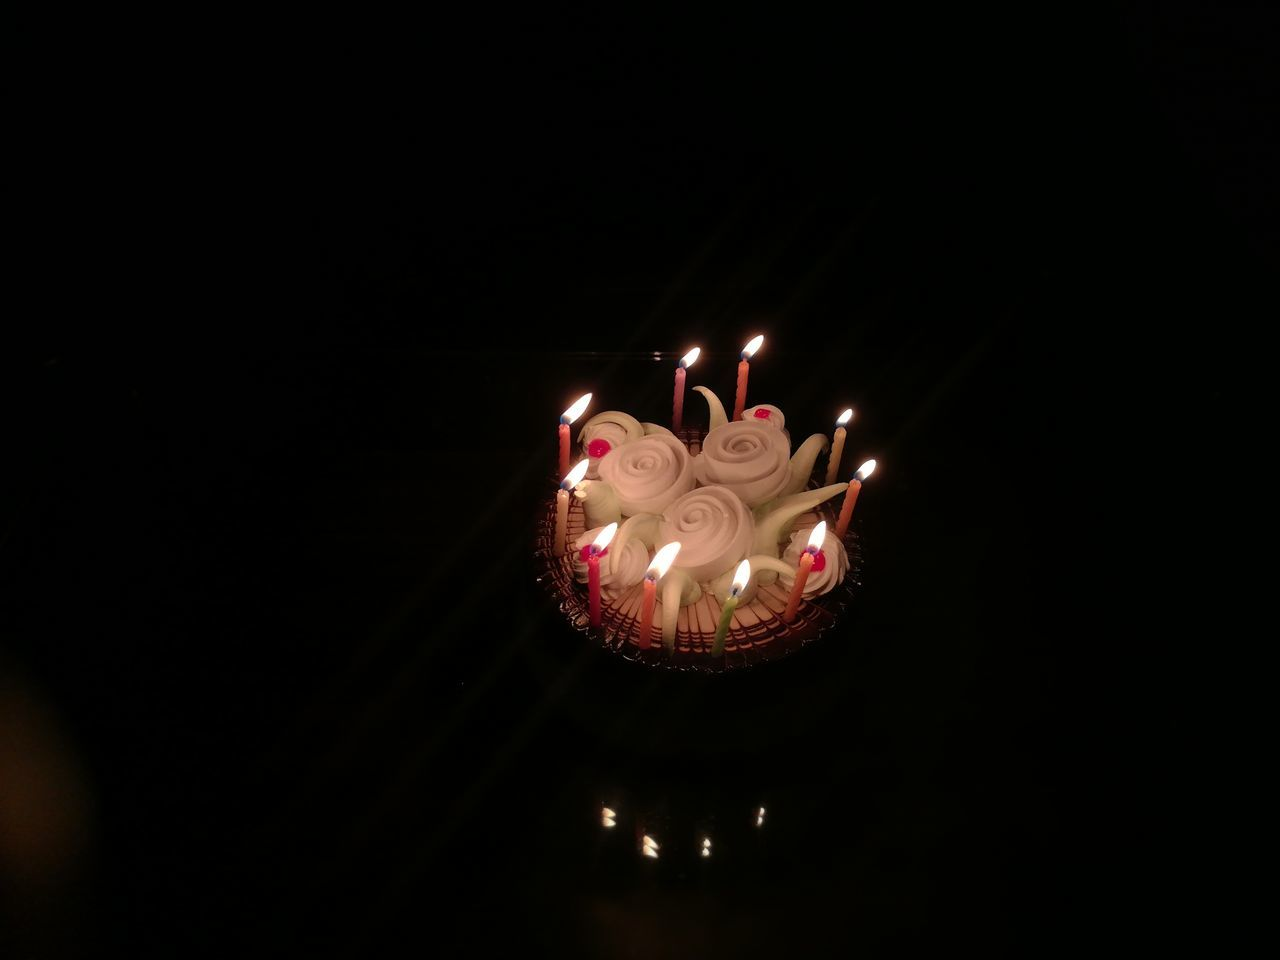 Celebration Birthday Cake Birthday Candles Flame Night Diwali Happiness Candles Burning Candles.❤ Candlelight Darkness And Light Darkroom birthdays getting old happiness Lifestyles HAPPY BIRTHDAY!!! Birthday Cake! Beautiful Cake Eggless Enjoy The Time